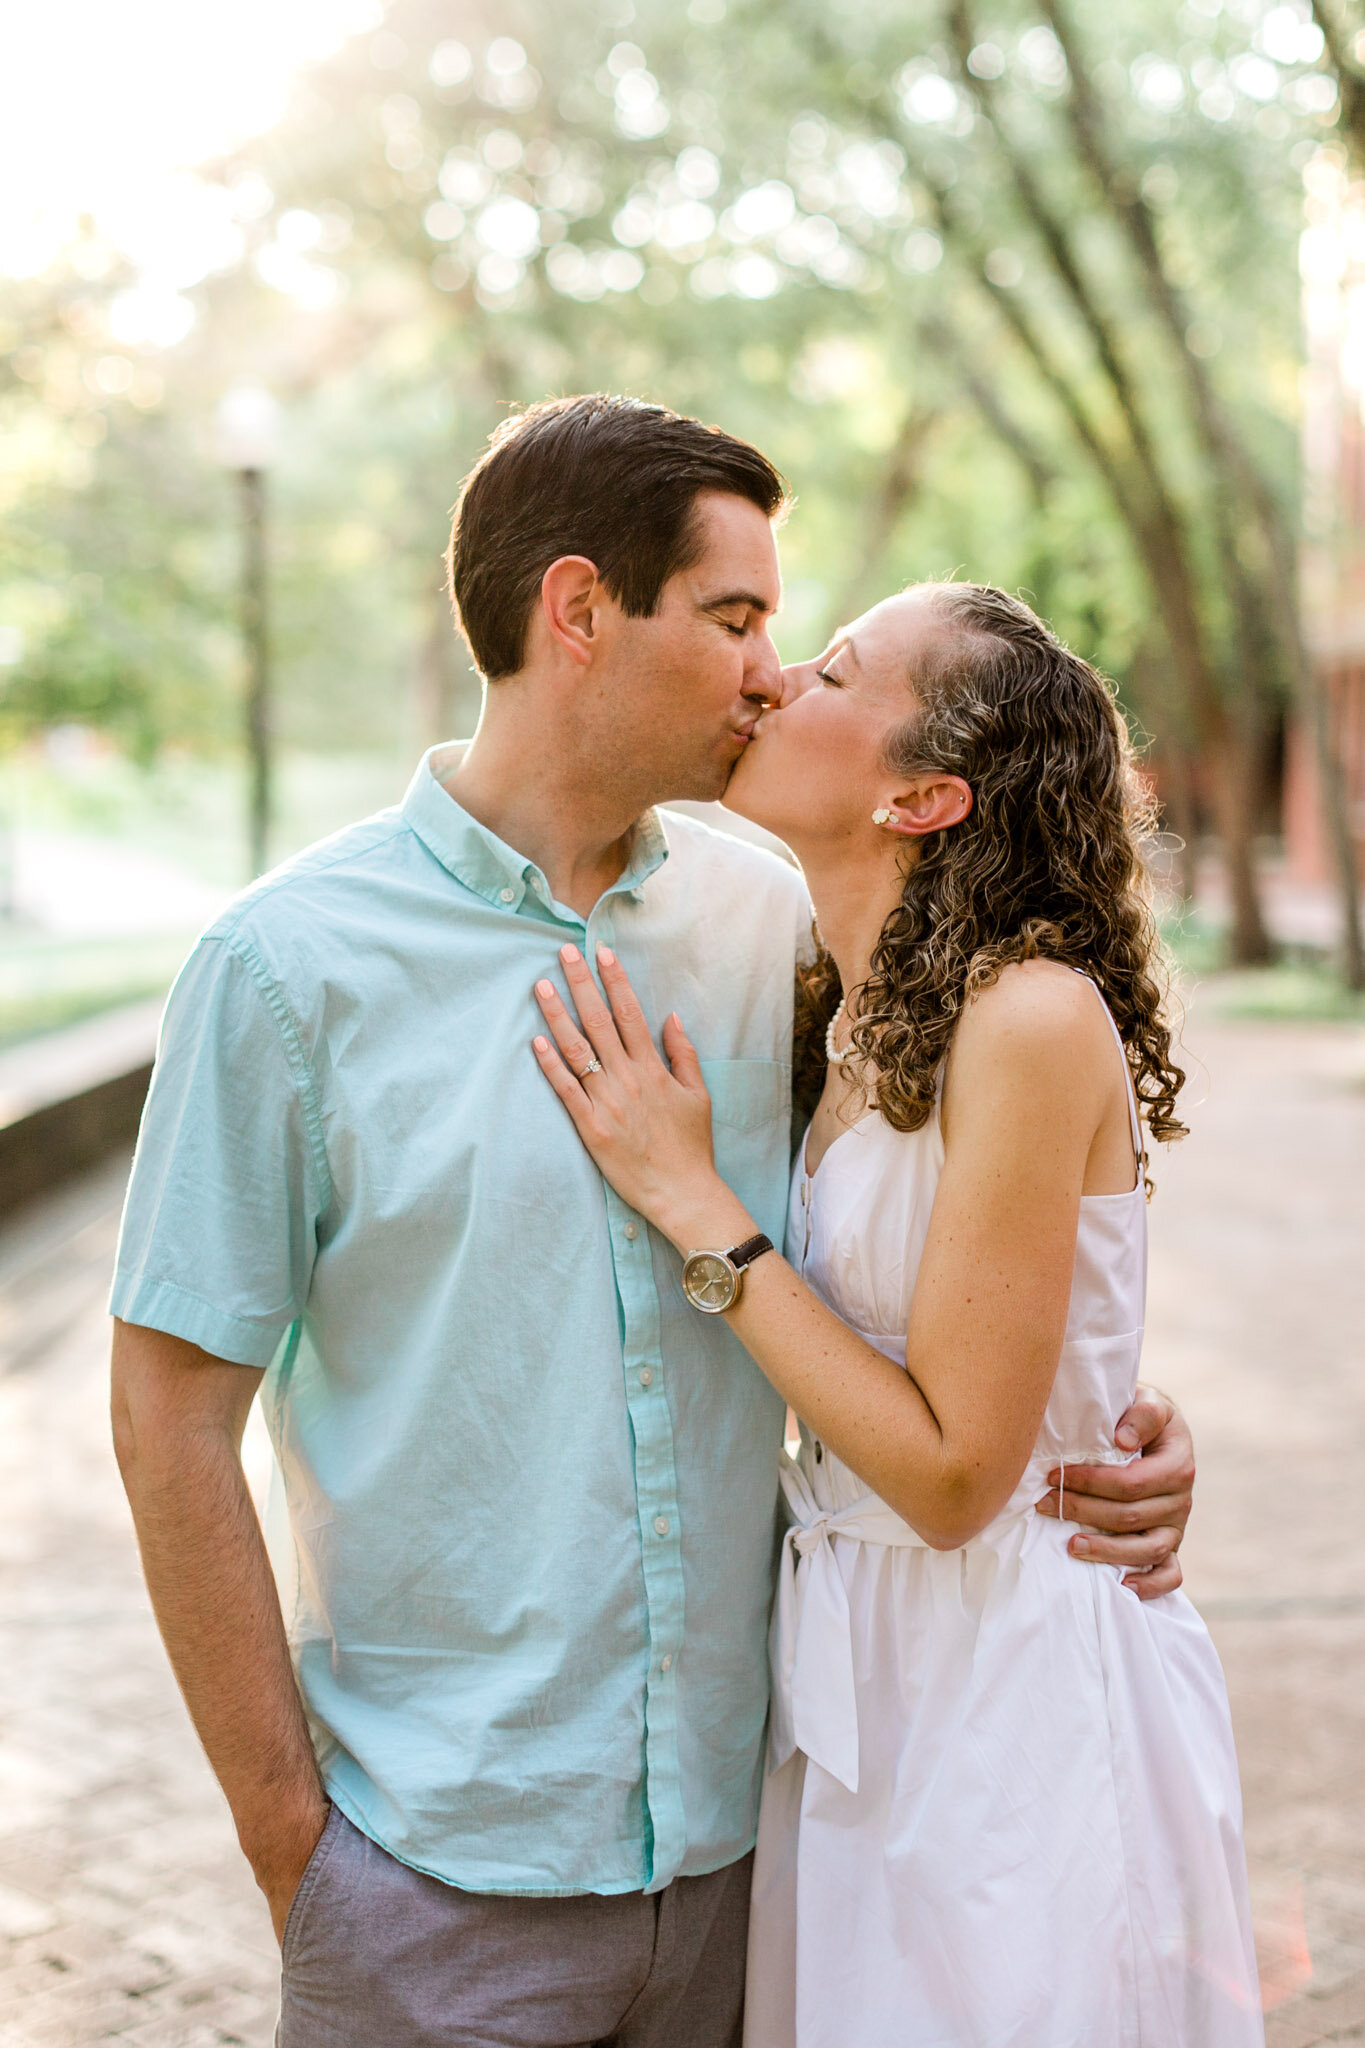 Raleigh Engagement Photographer | NC State University | By G. Lin Photography | Couple kissing outdoors during golden hour